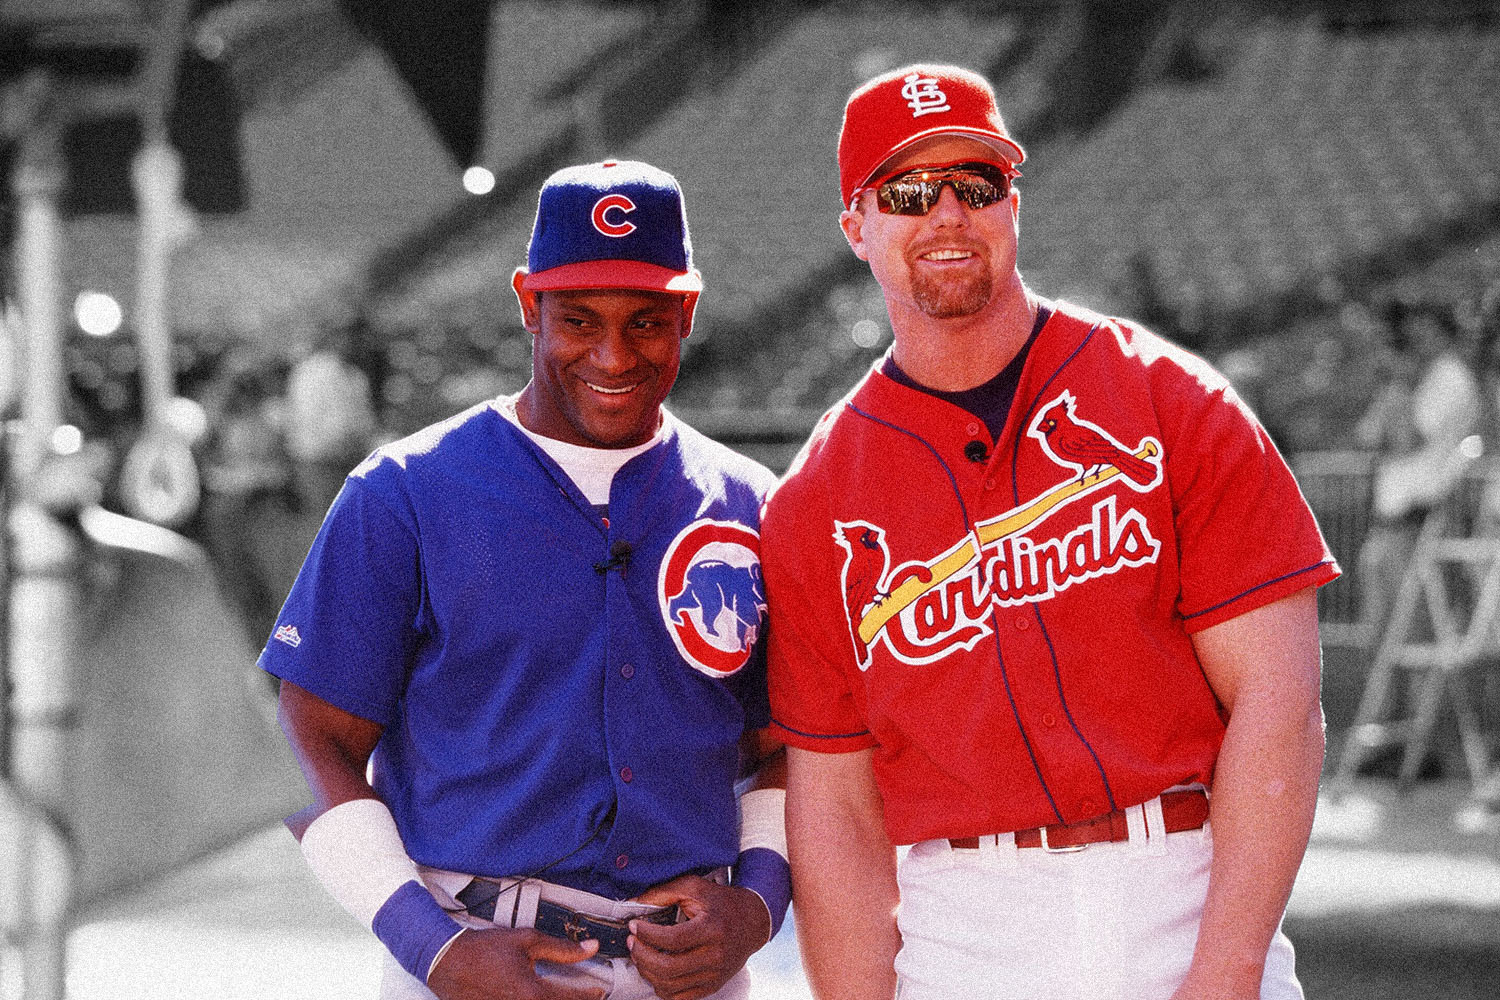 Mark McGwire of the St. Louis Cardinals and Sammy Sosa of the Chicago Cubs joke before the game at Busch Stadium on September 7, 1998 in St. Louis, Missouri. (Photo by Sporting News via Getty Images via Getty Images)